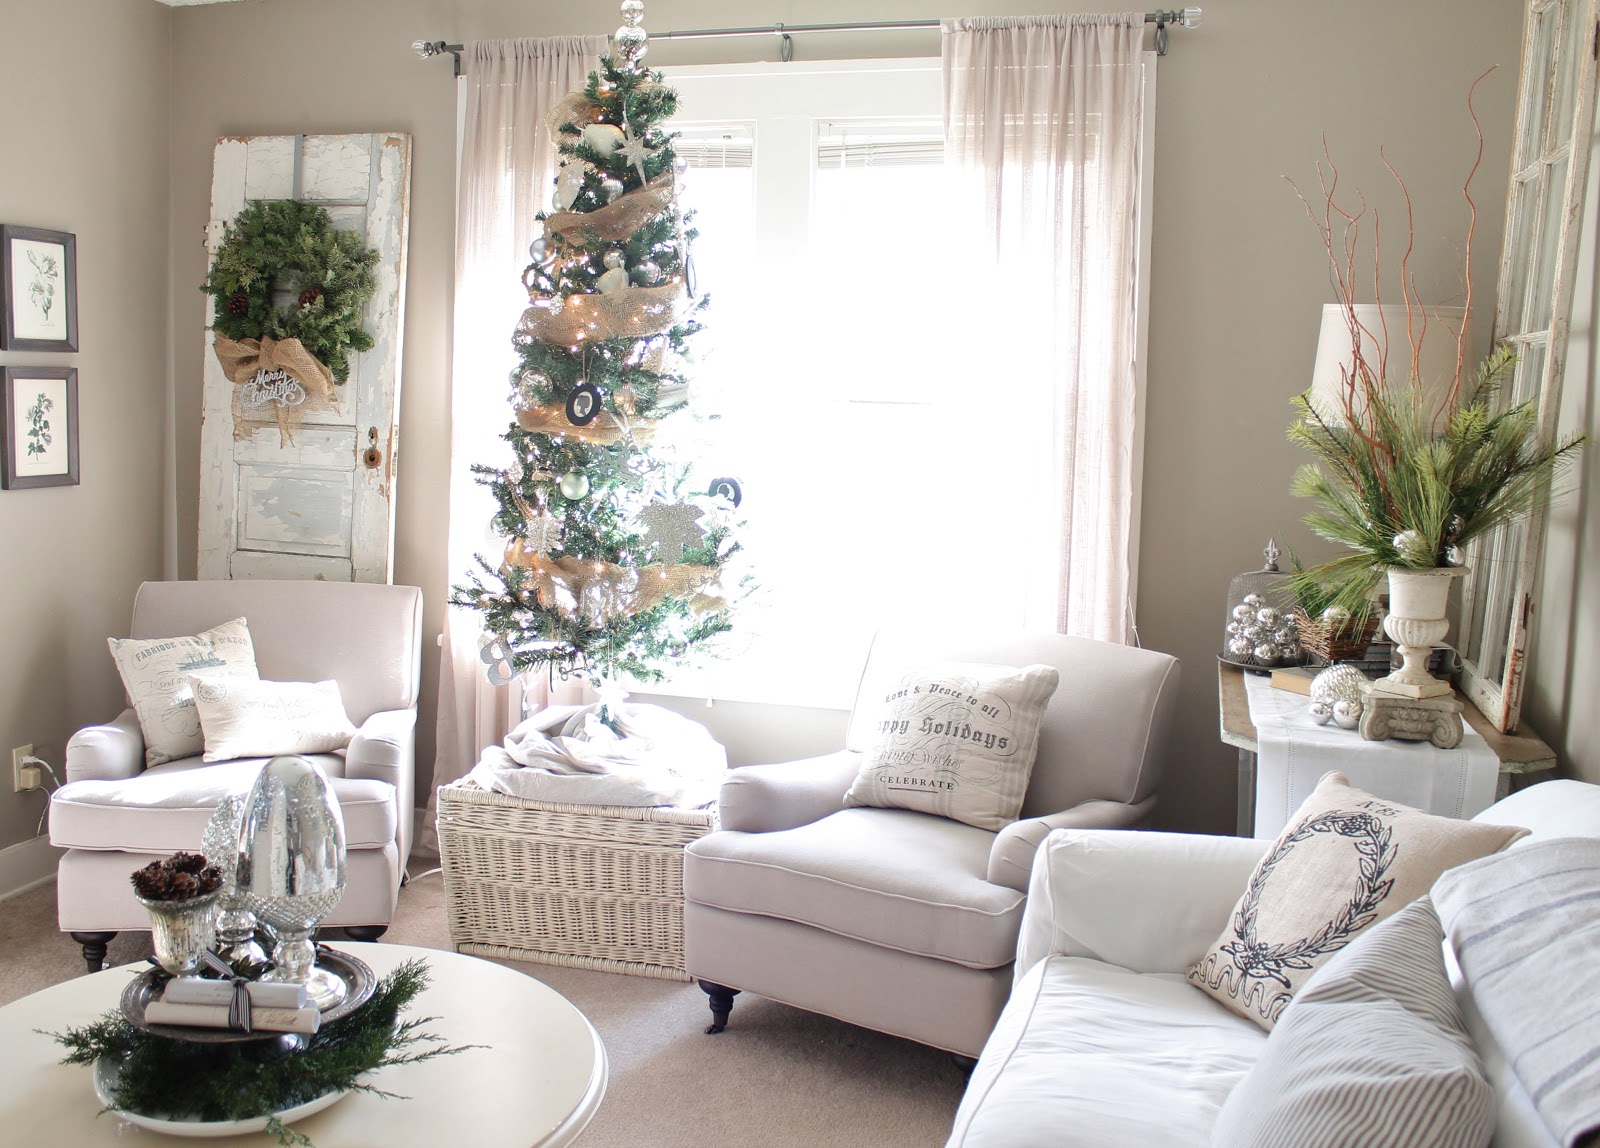 12th and white our christmas living room part 2 - How to decorate a small living room for christmas ...